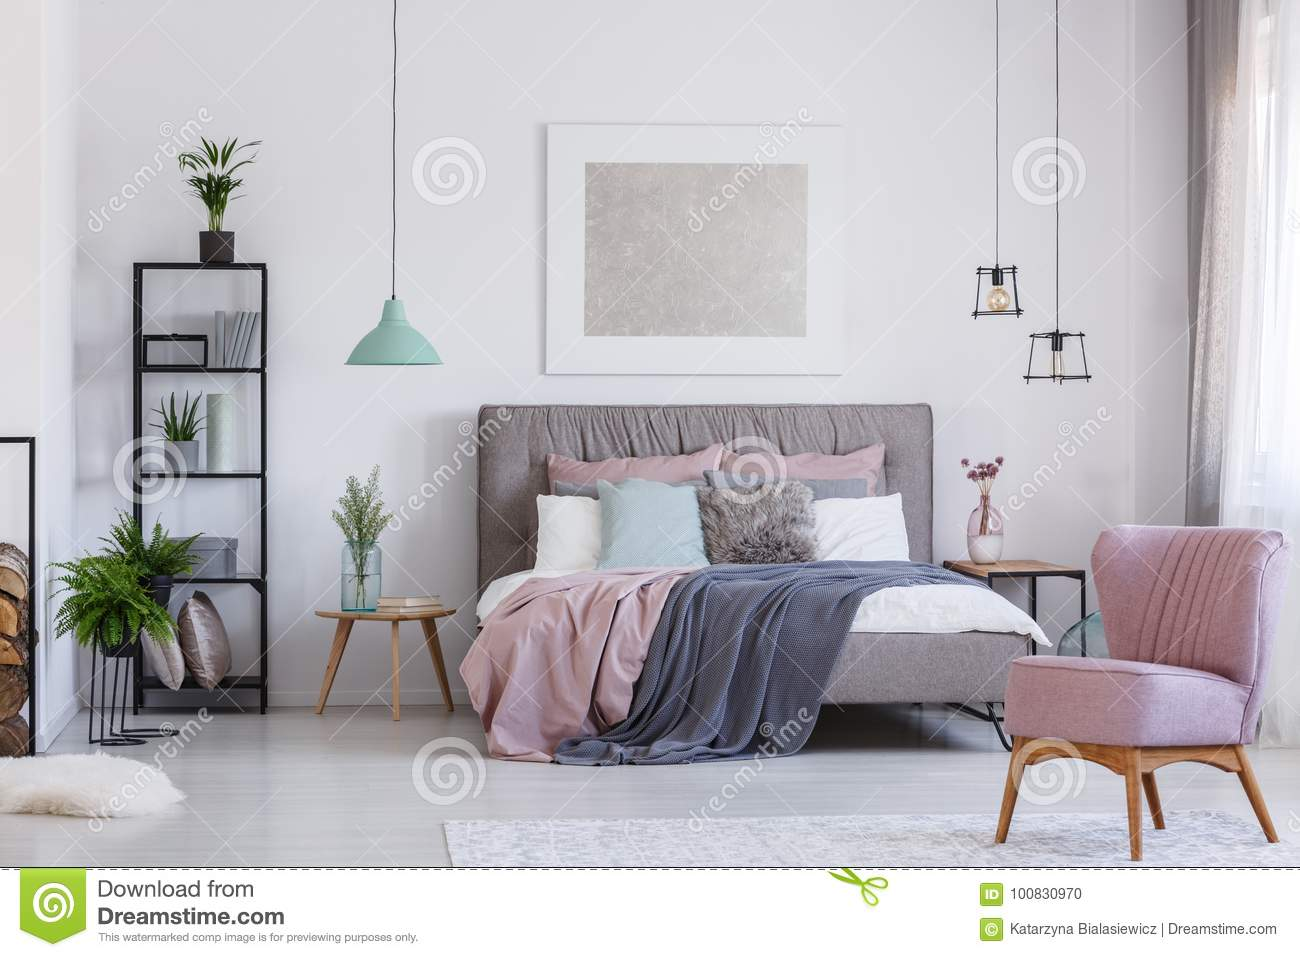 Pink Chair In Adorable Bedroom Stock Photo - Image of floor, lamp ...